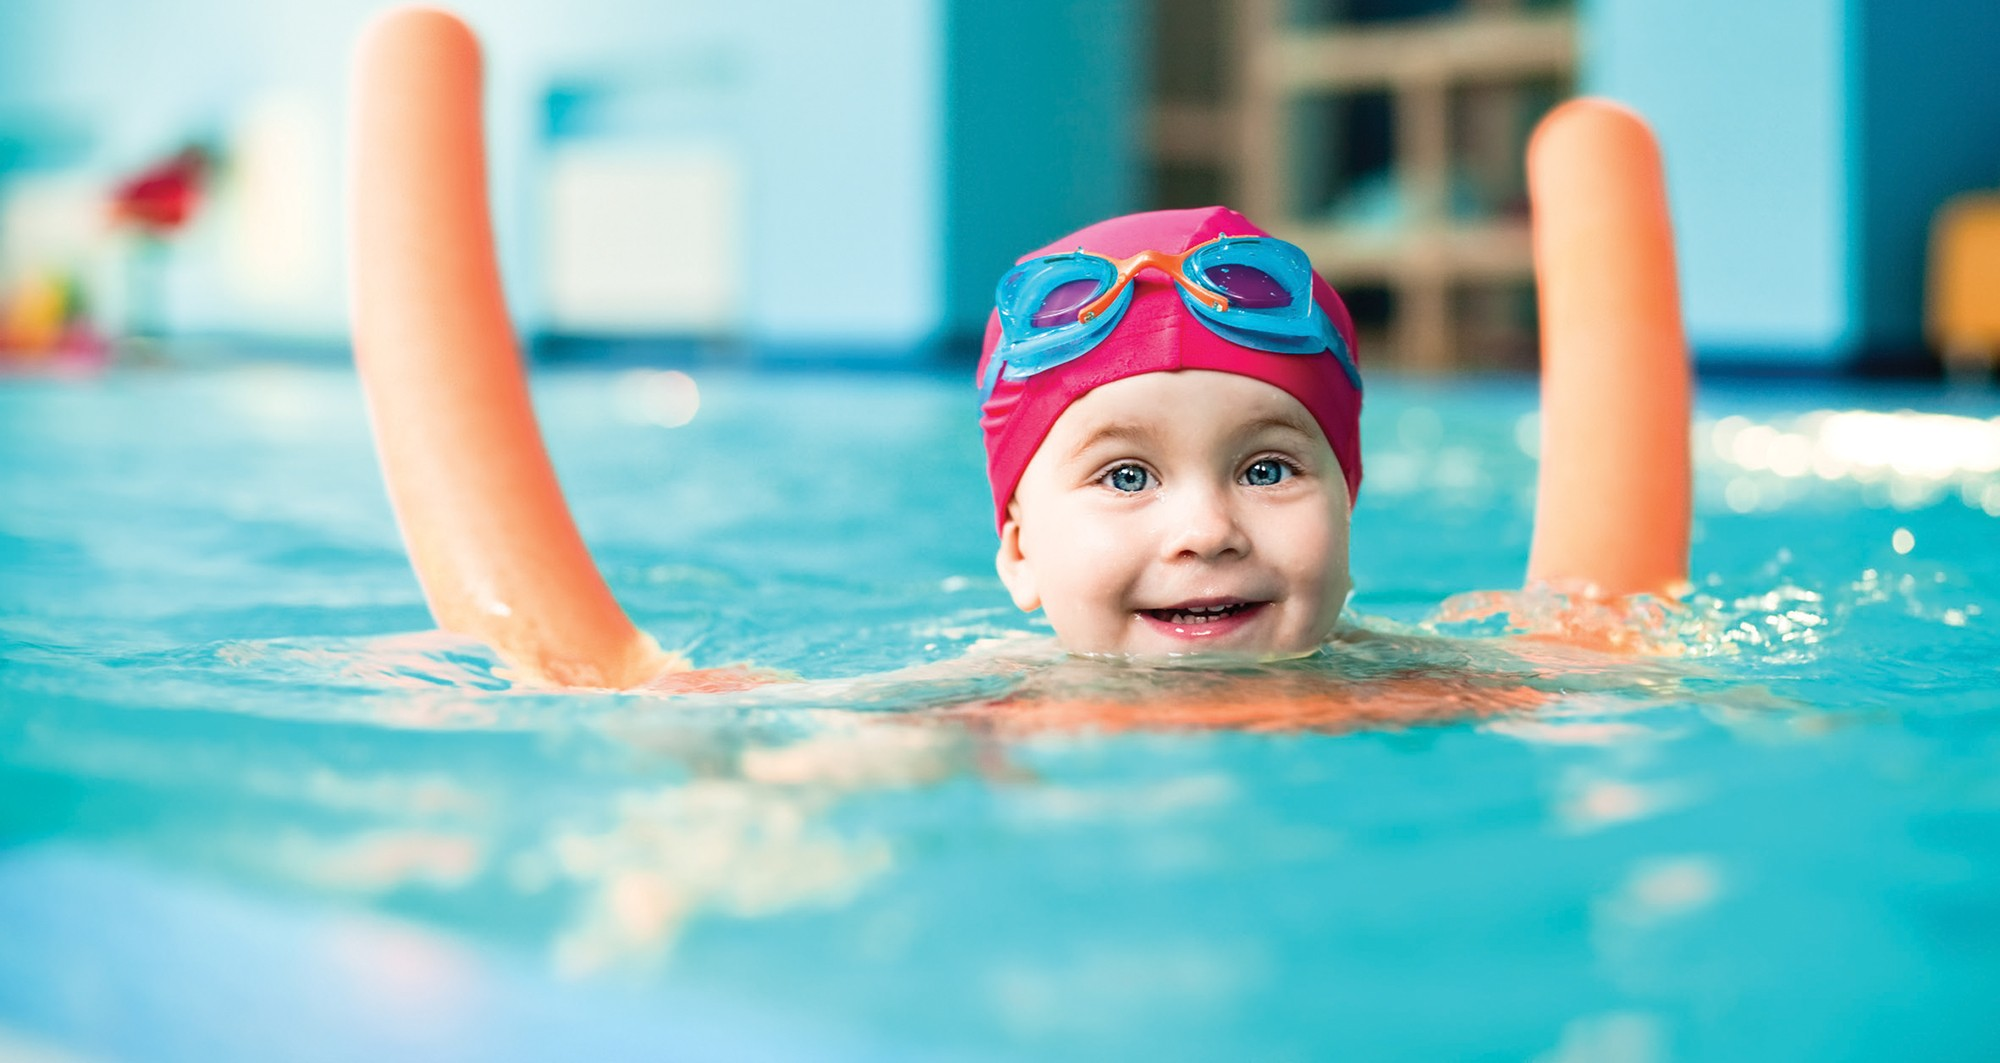 Kids swimming classes Sligo - 6 week course at a cost of €55.00